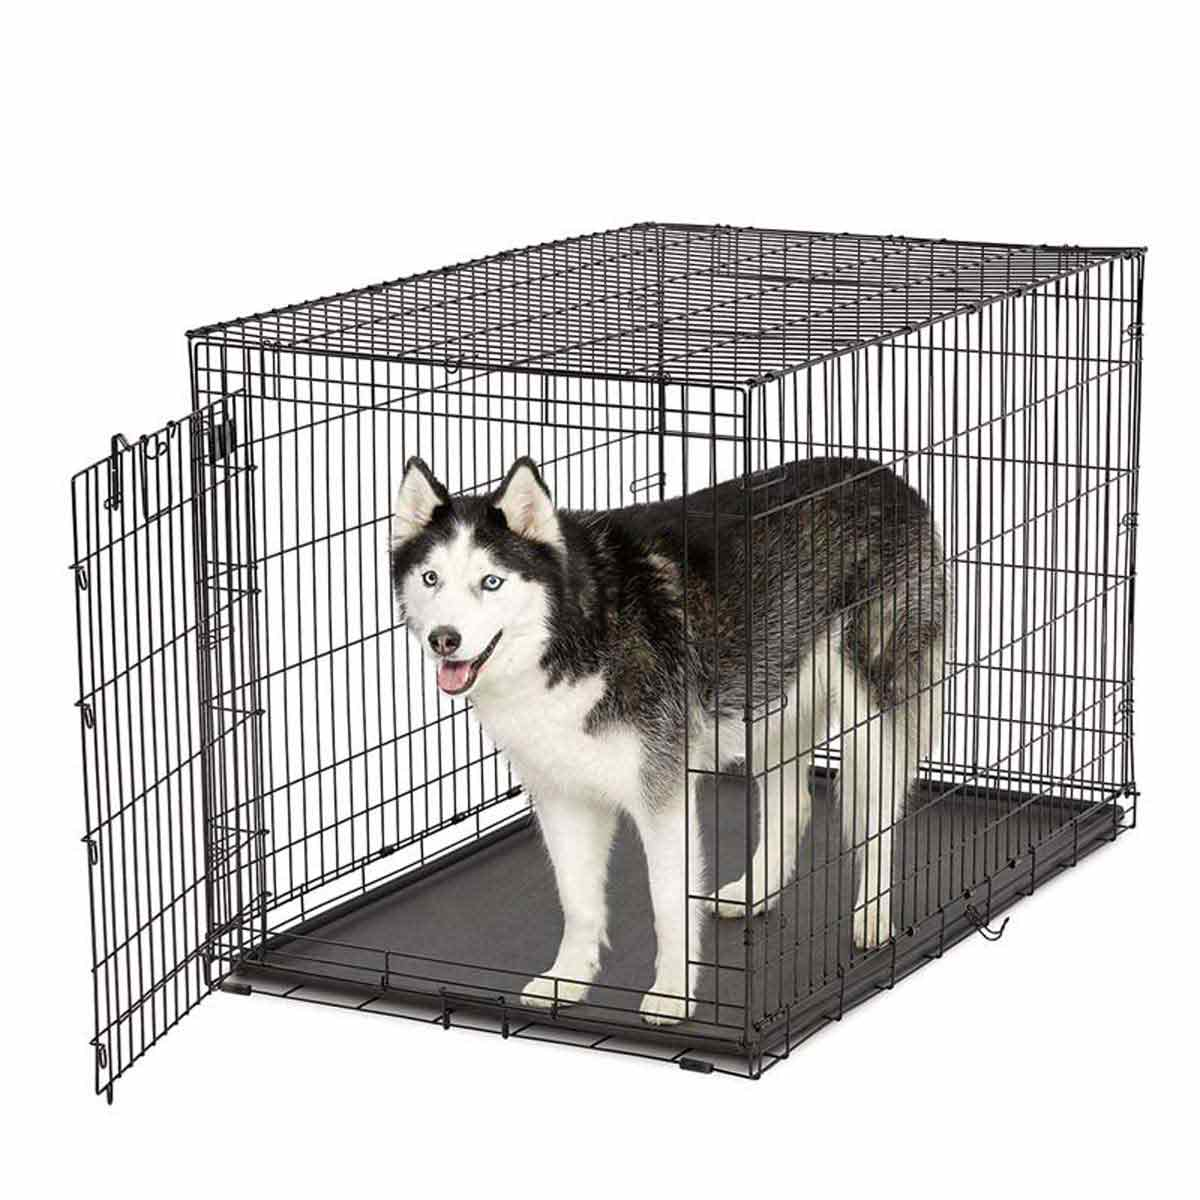 Midwest Life Stage A.C.E. Single Door Dog Kennel - 48.75 inches by 30.25 inches by 32.5 inches